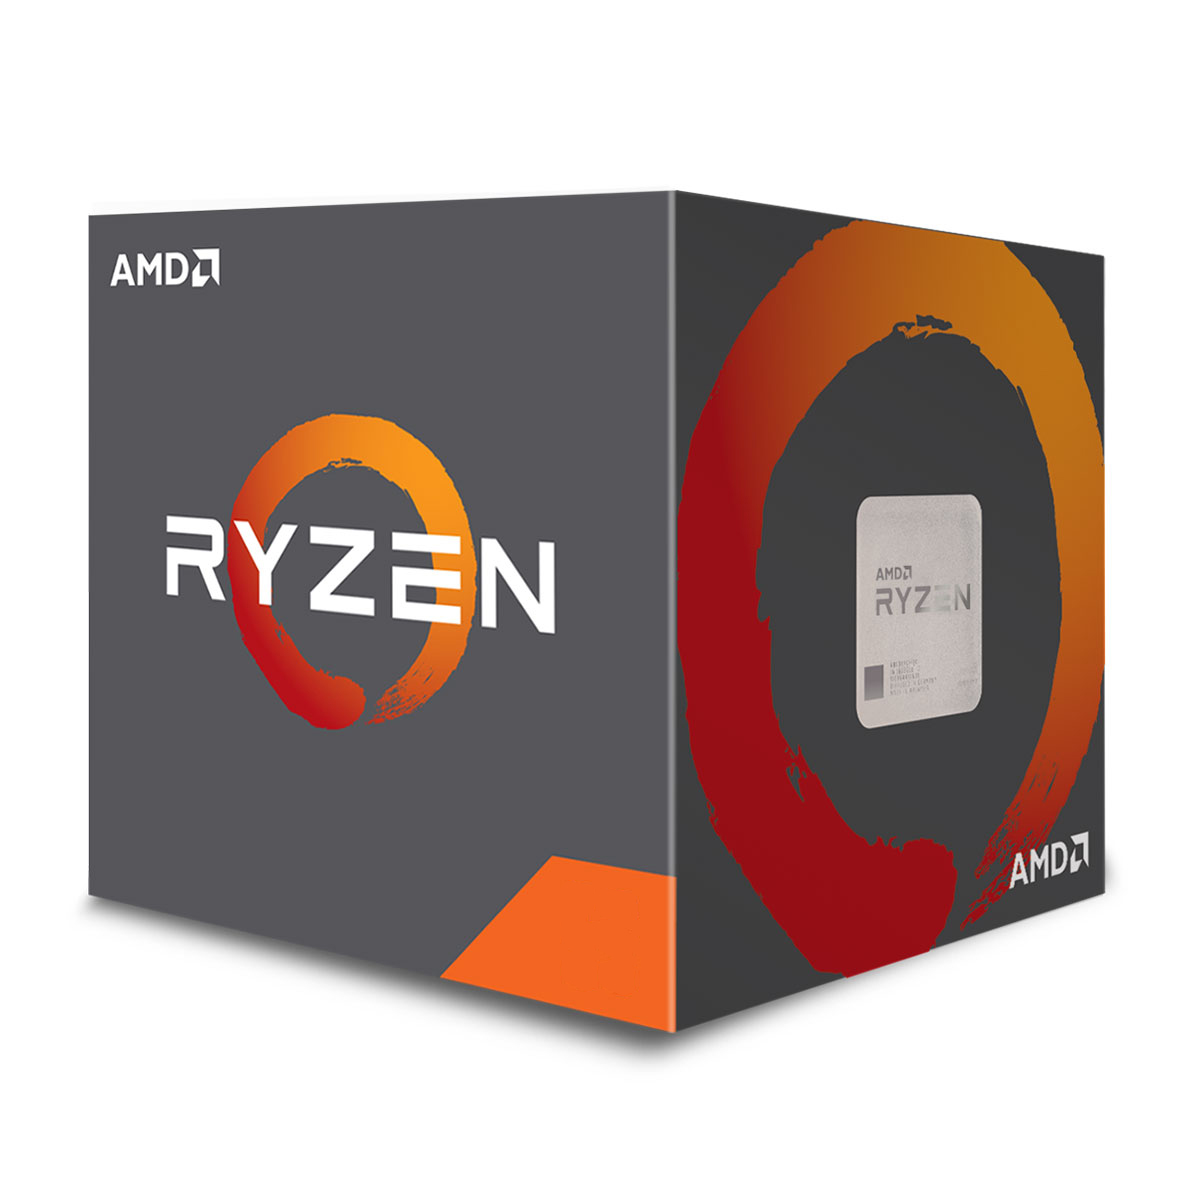 Processeur AMD 4 Core-4 Threads Socket AM4 Ryzen 3 1200 10 Mo (Boîte), informatique ile de la Réunion, informatique-reunion.com